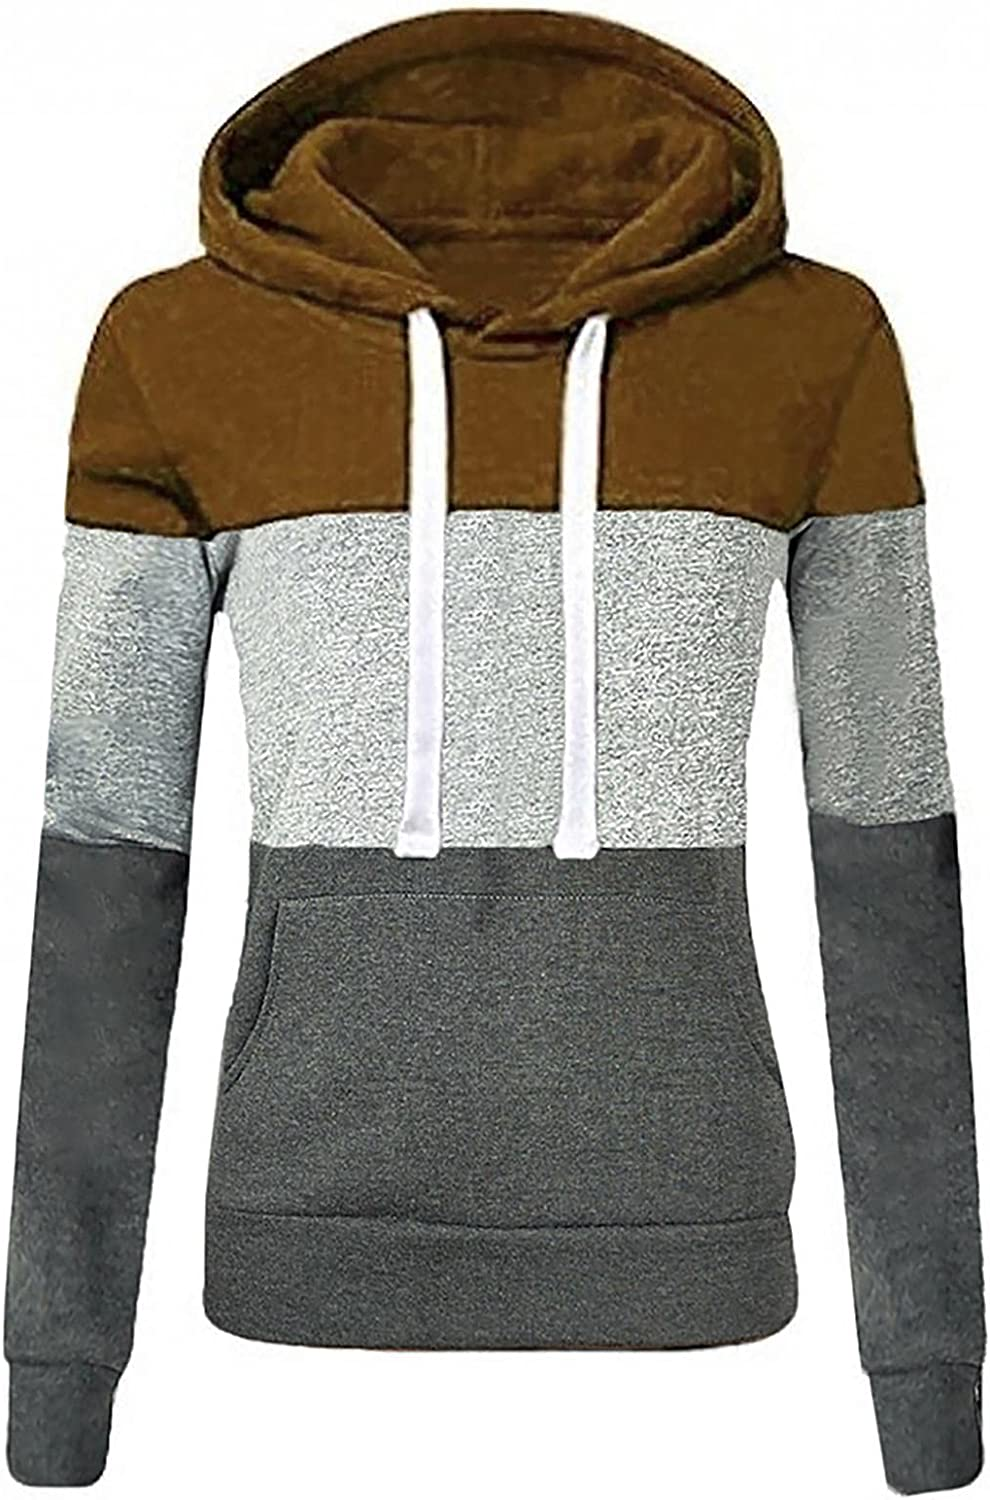 Hoodies for Women Pullover Crew Neck Tunics Shirts Tops Casual Long Sleeve Sweatshirts Loose Soft Striped Print Blouses